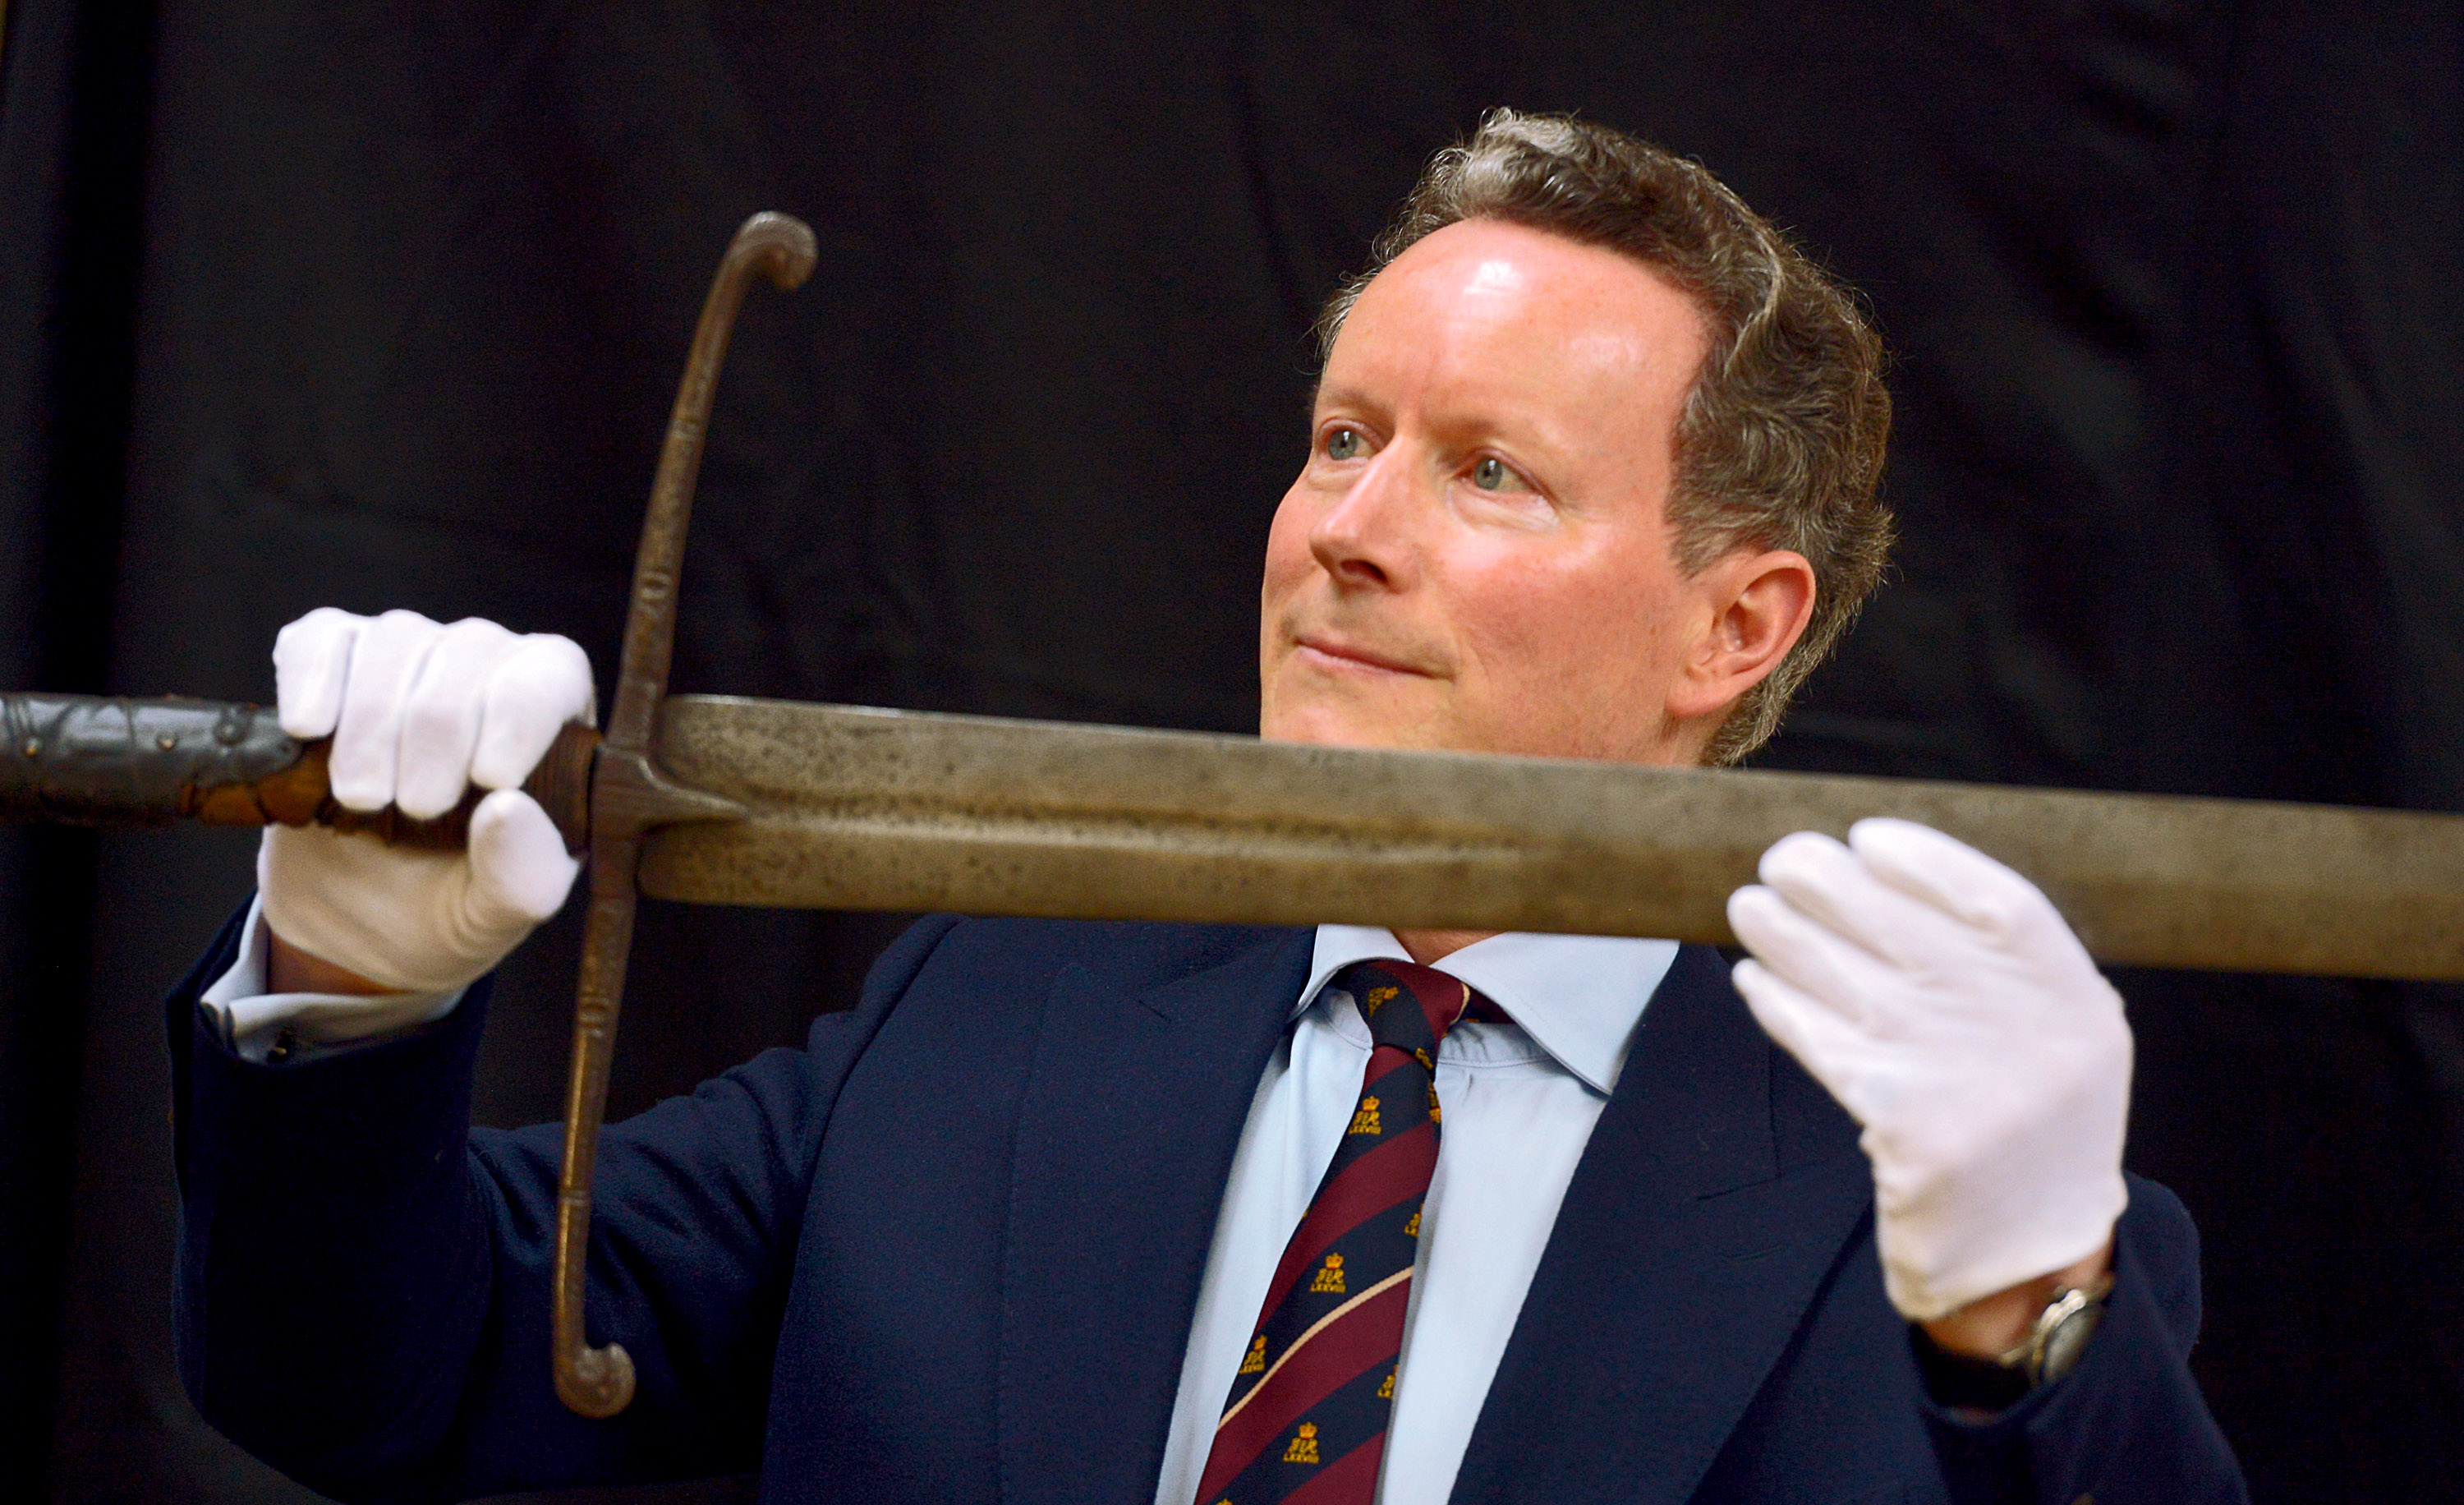 Lord Bruce with the sword of his ancestor, King Robert